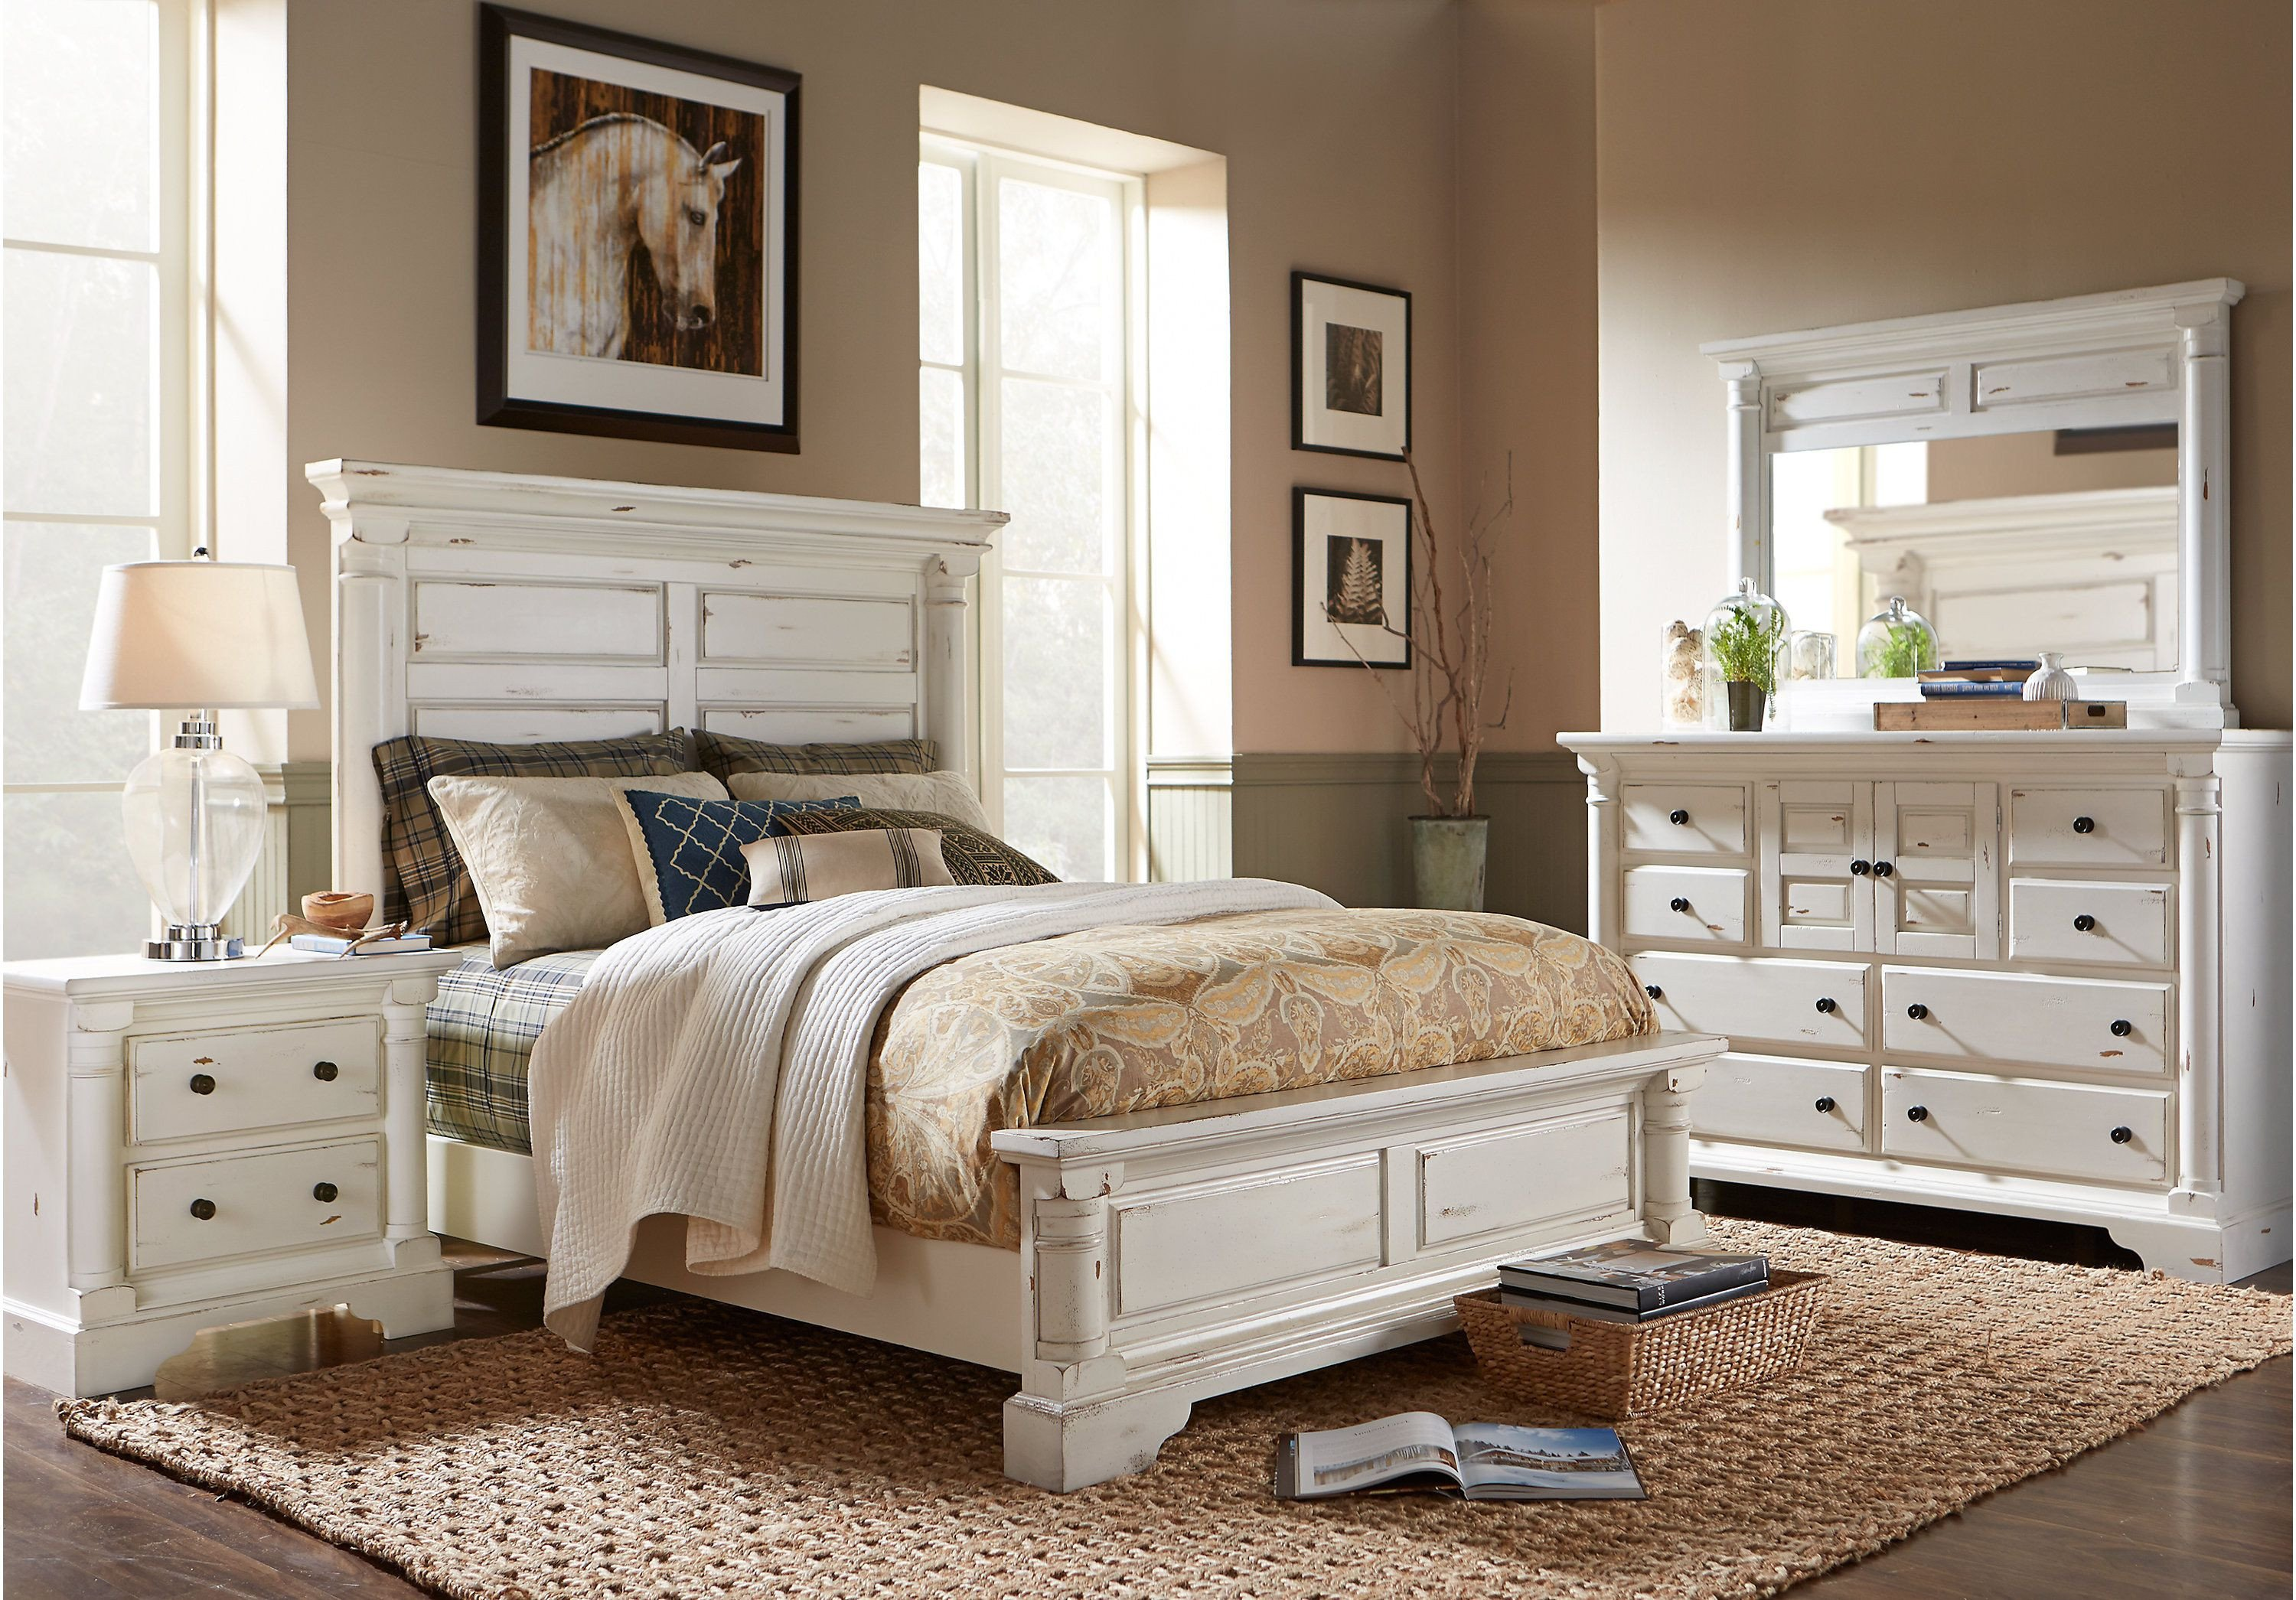 Ikea Bedroom Set Queen Inspirational Bedroom Charming Roomstogokids with Beautiful Decor for